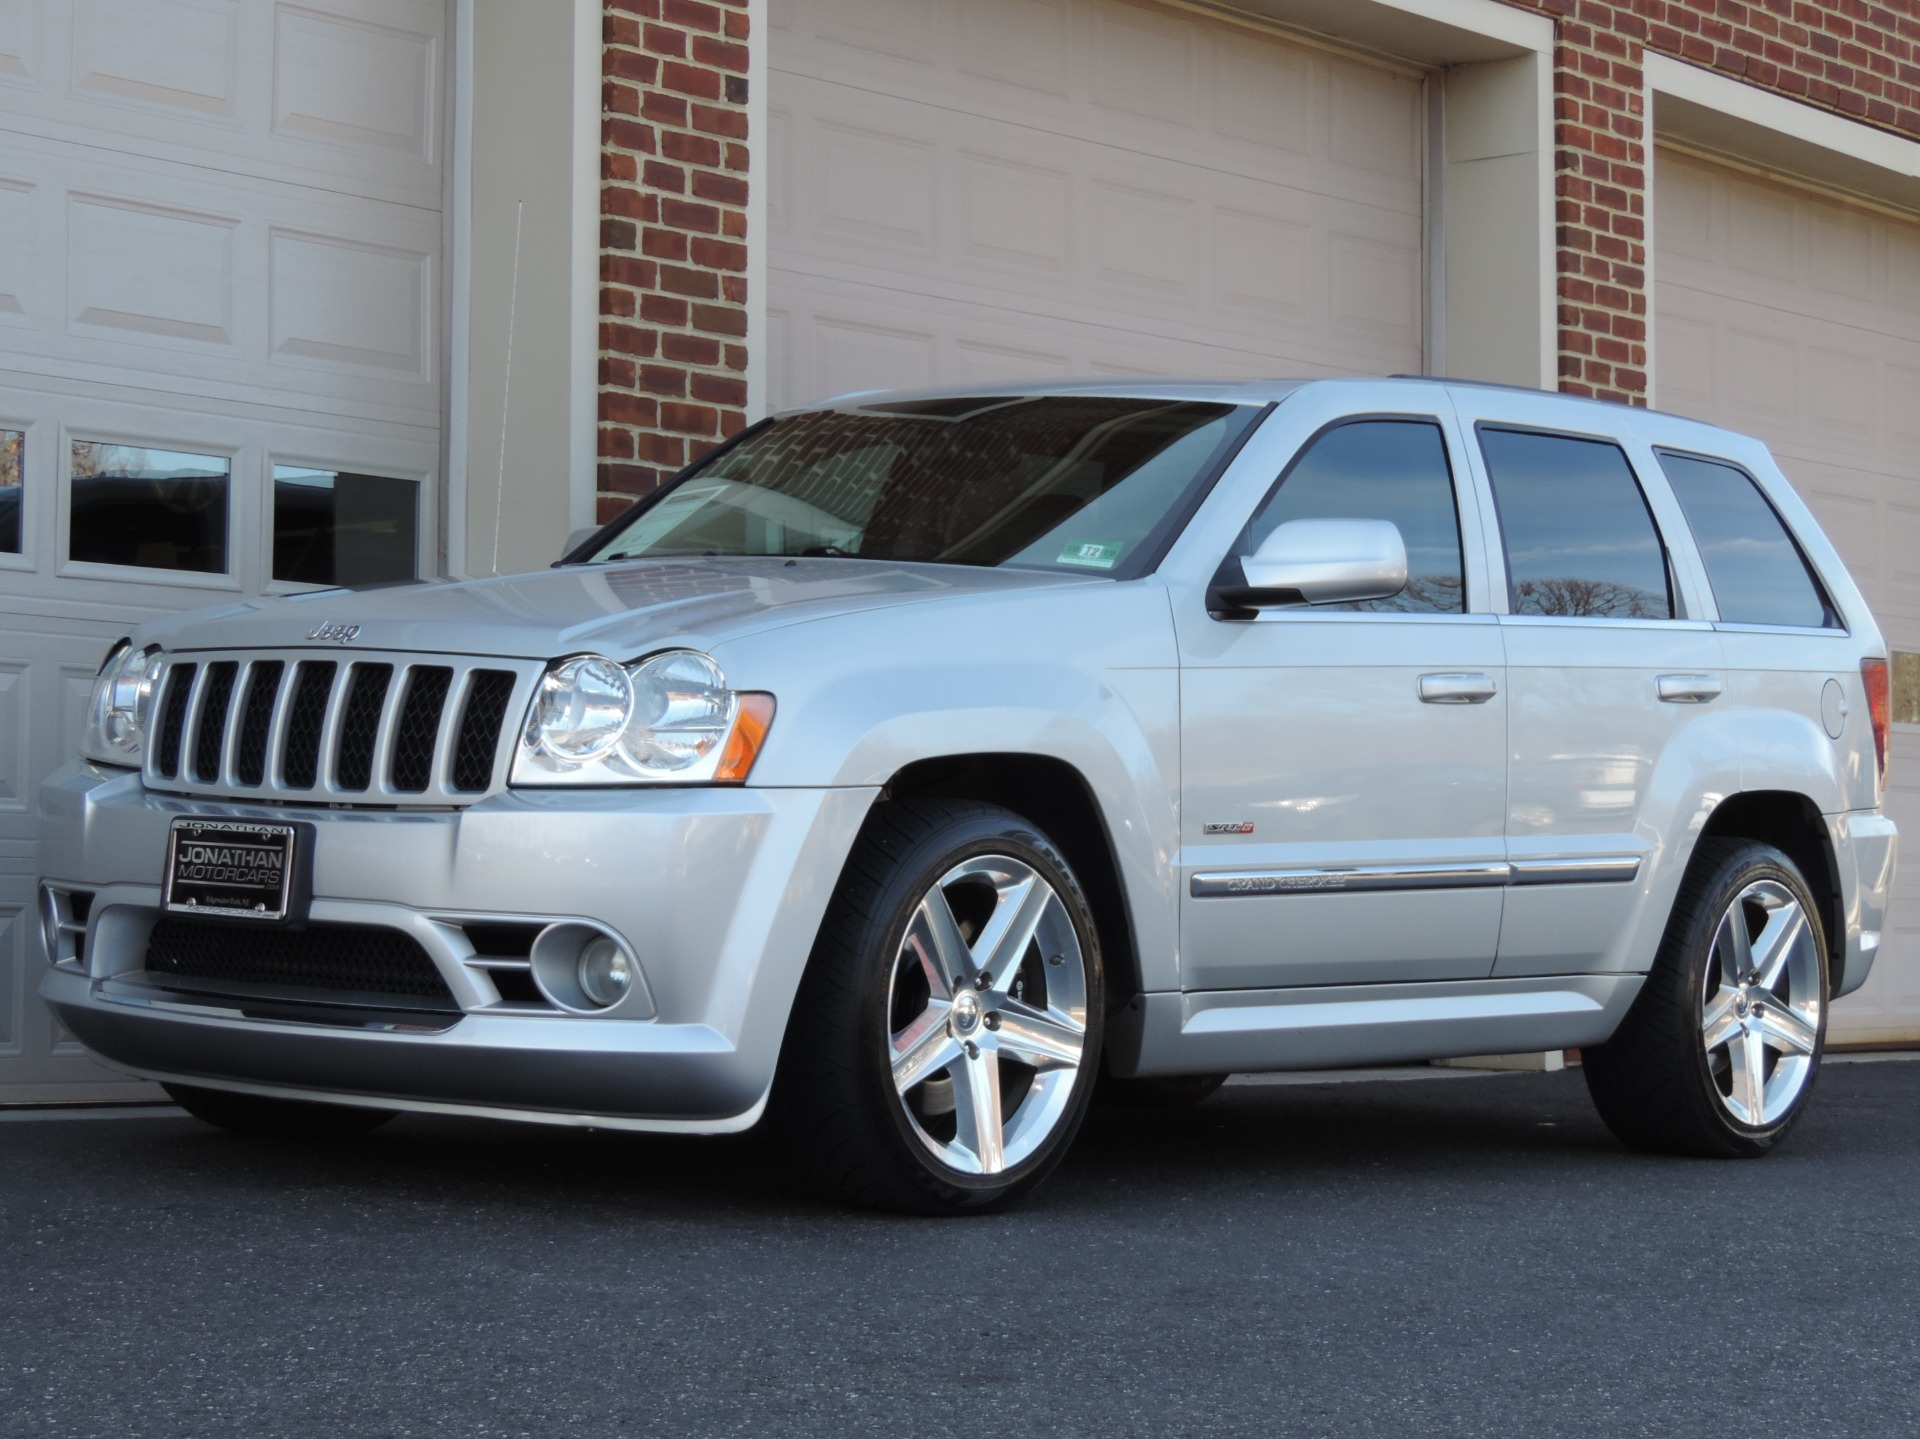 2007 jeep grand cherokee srt8 stock 502498 for sale near. Black Bedroom Furniture Sets. Home Design Ideas